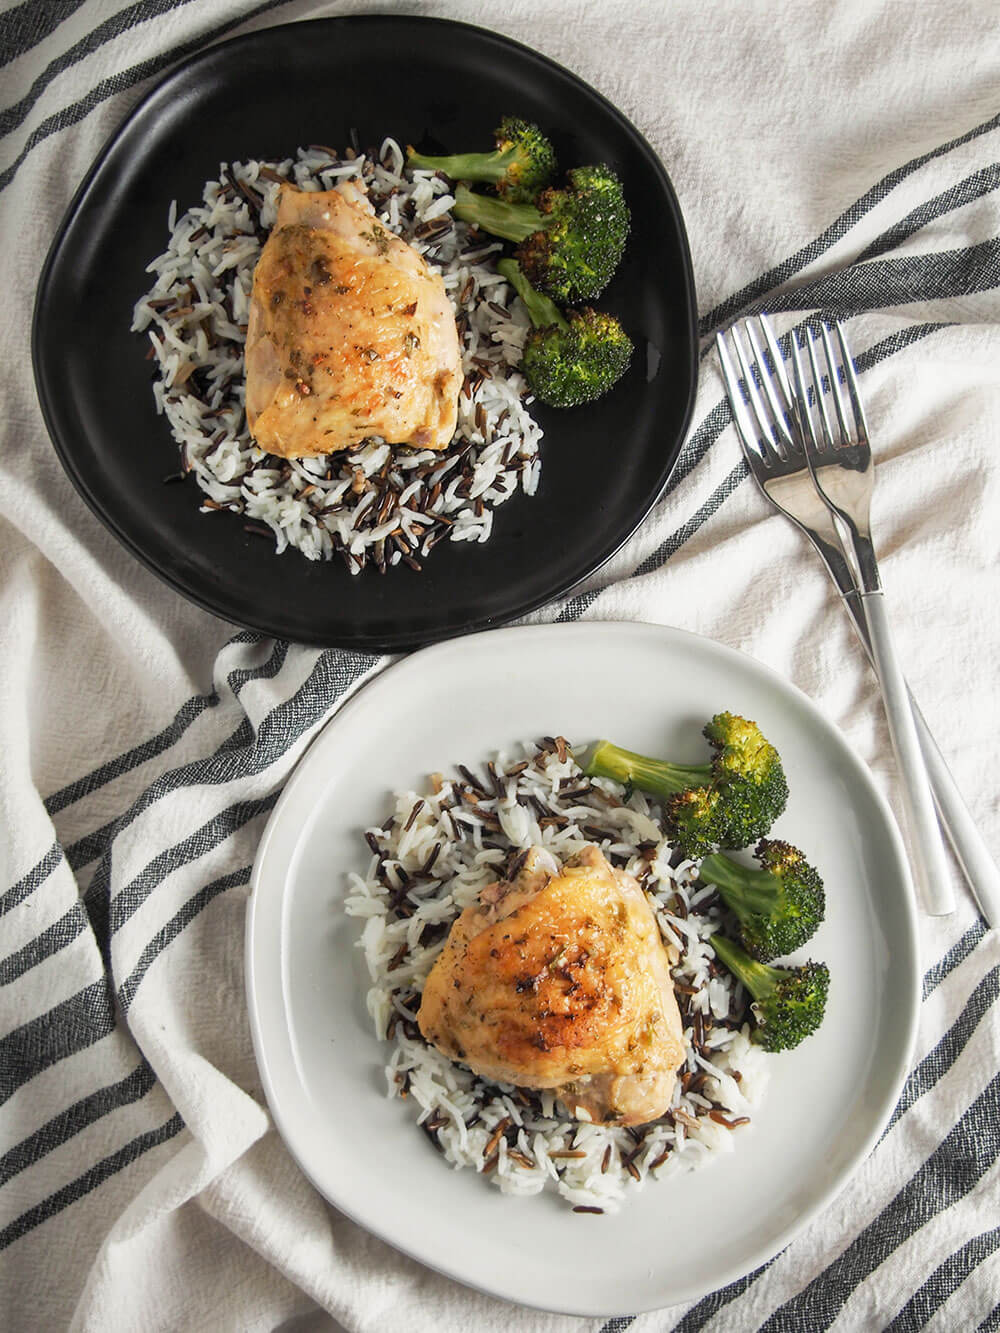 baked tarragon chicken plates from overhead